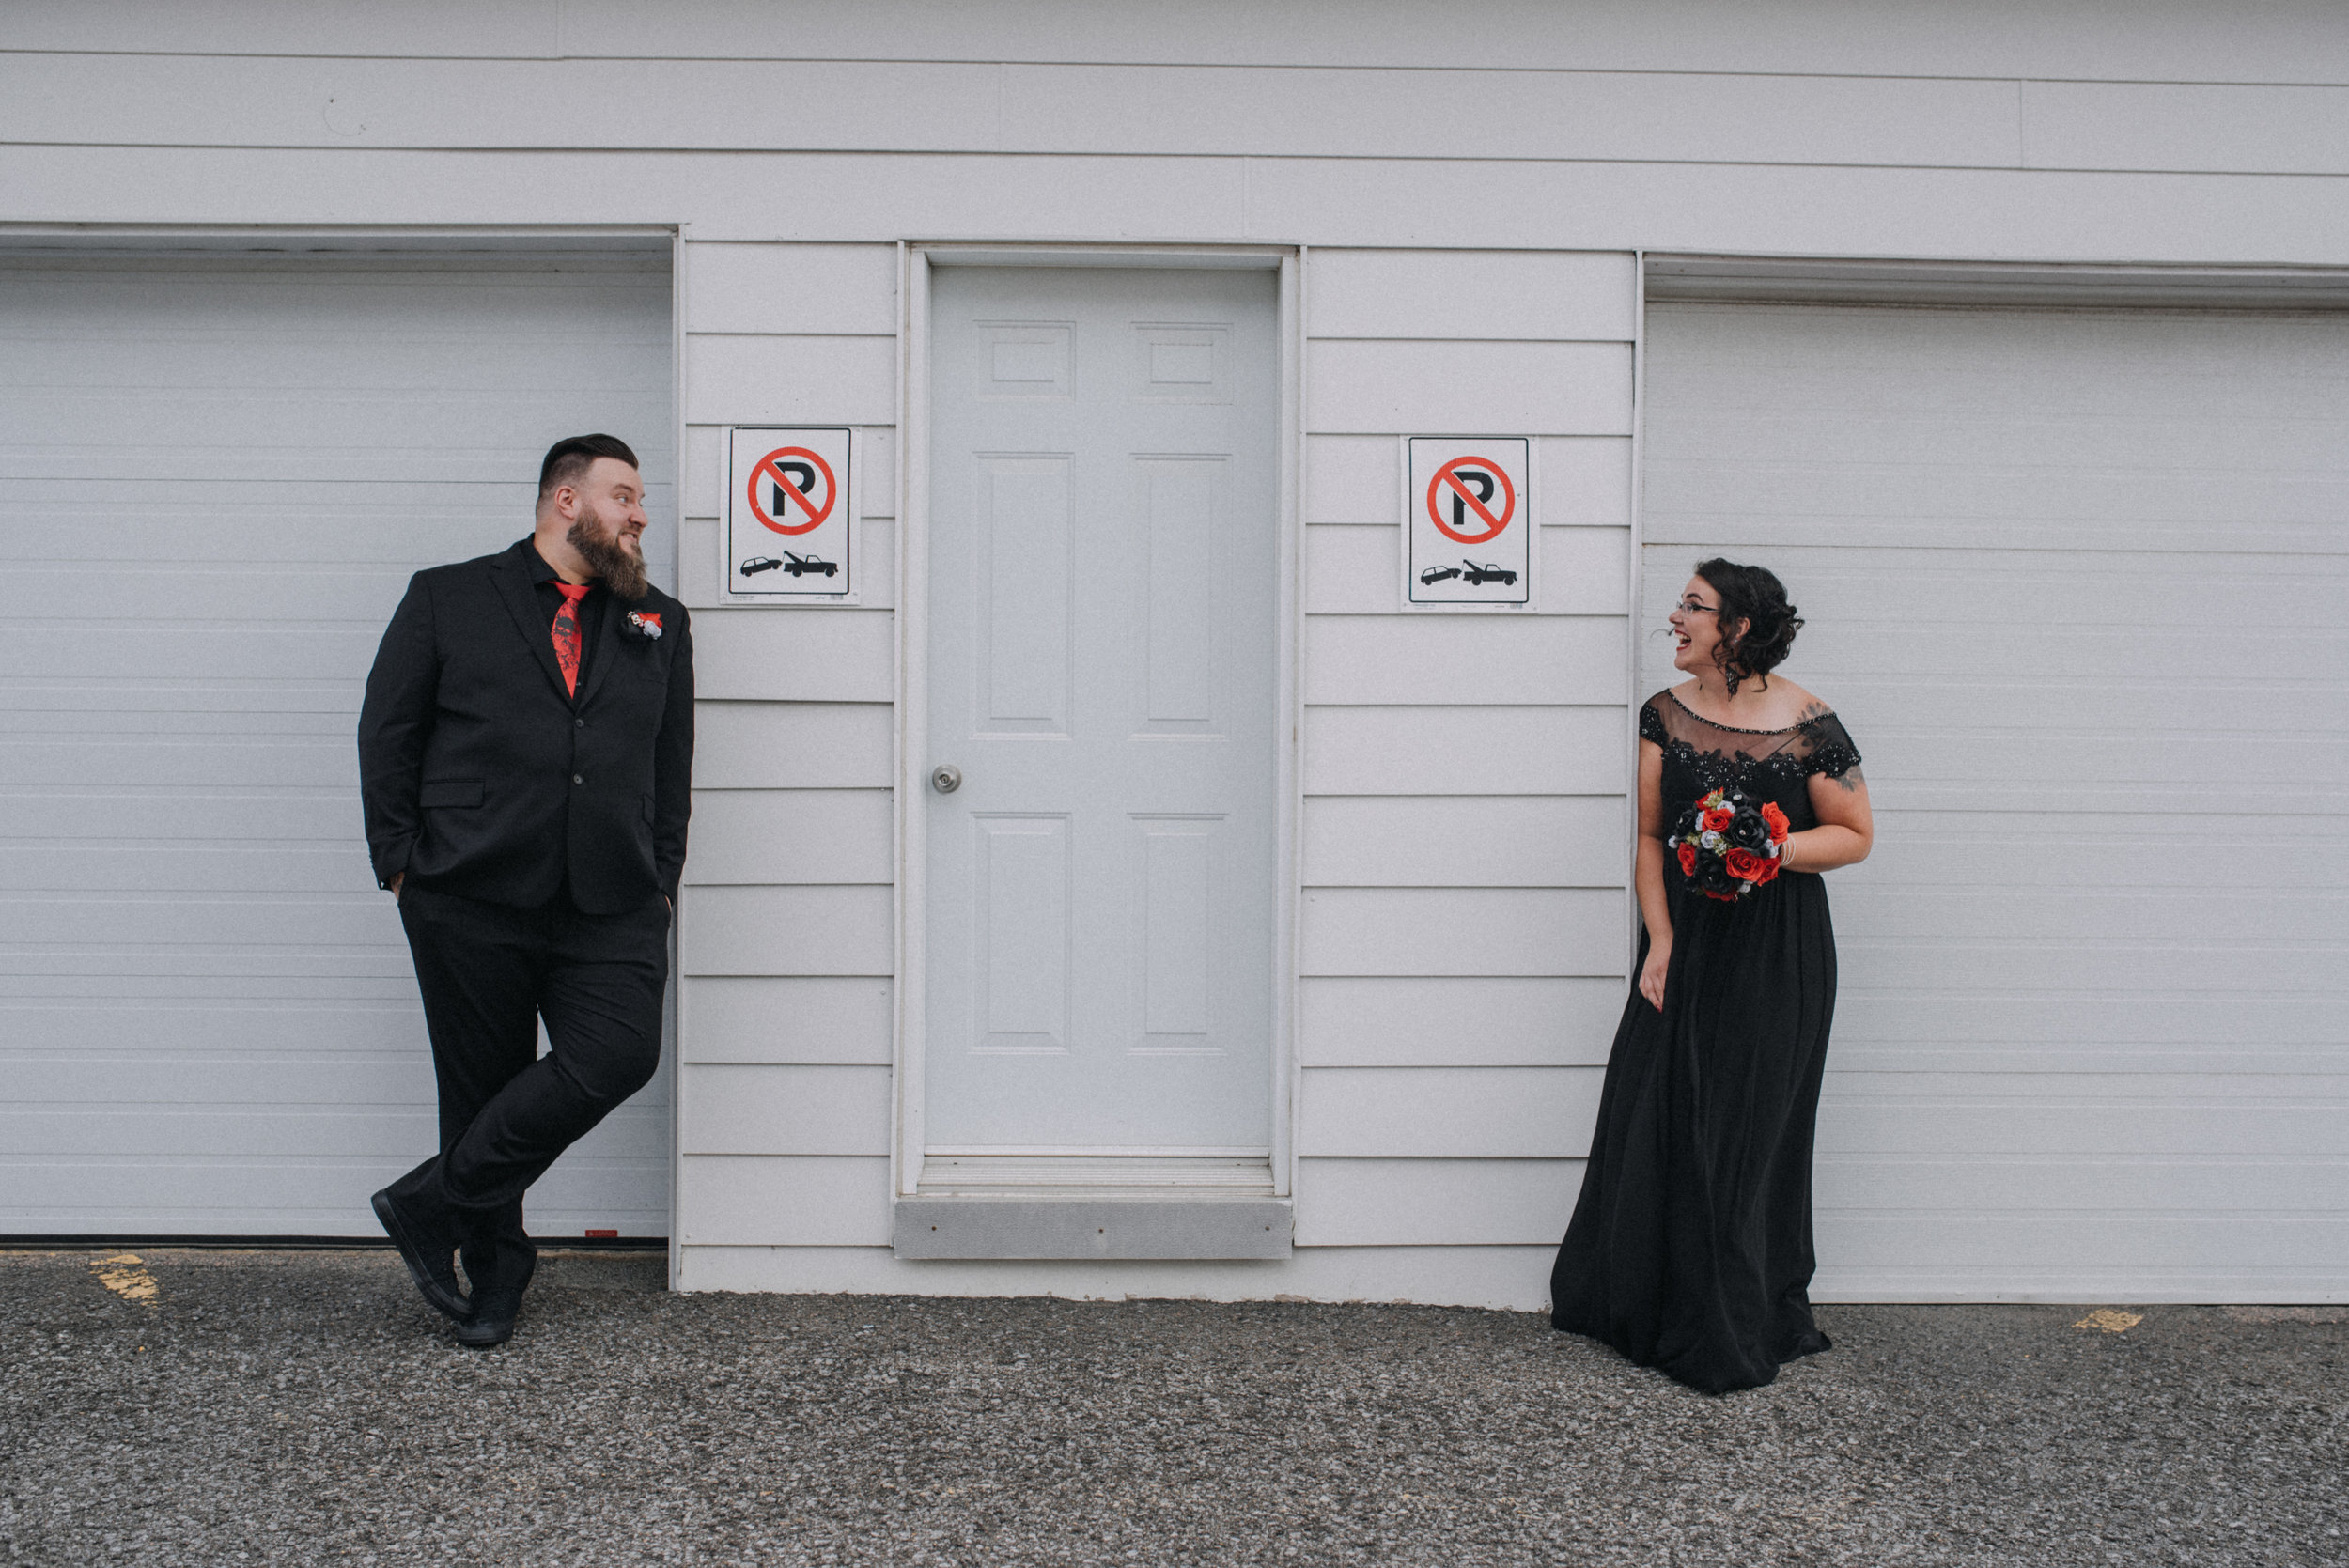 gatineau_photographe_mariage_ottawa_wedding_photographer_photography_candid_natural_moody_documentary_lifestyle (26).JPG